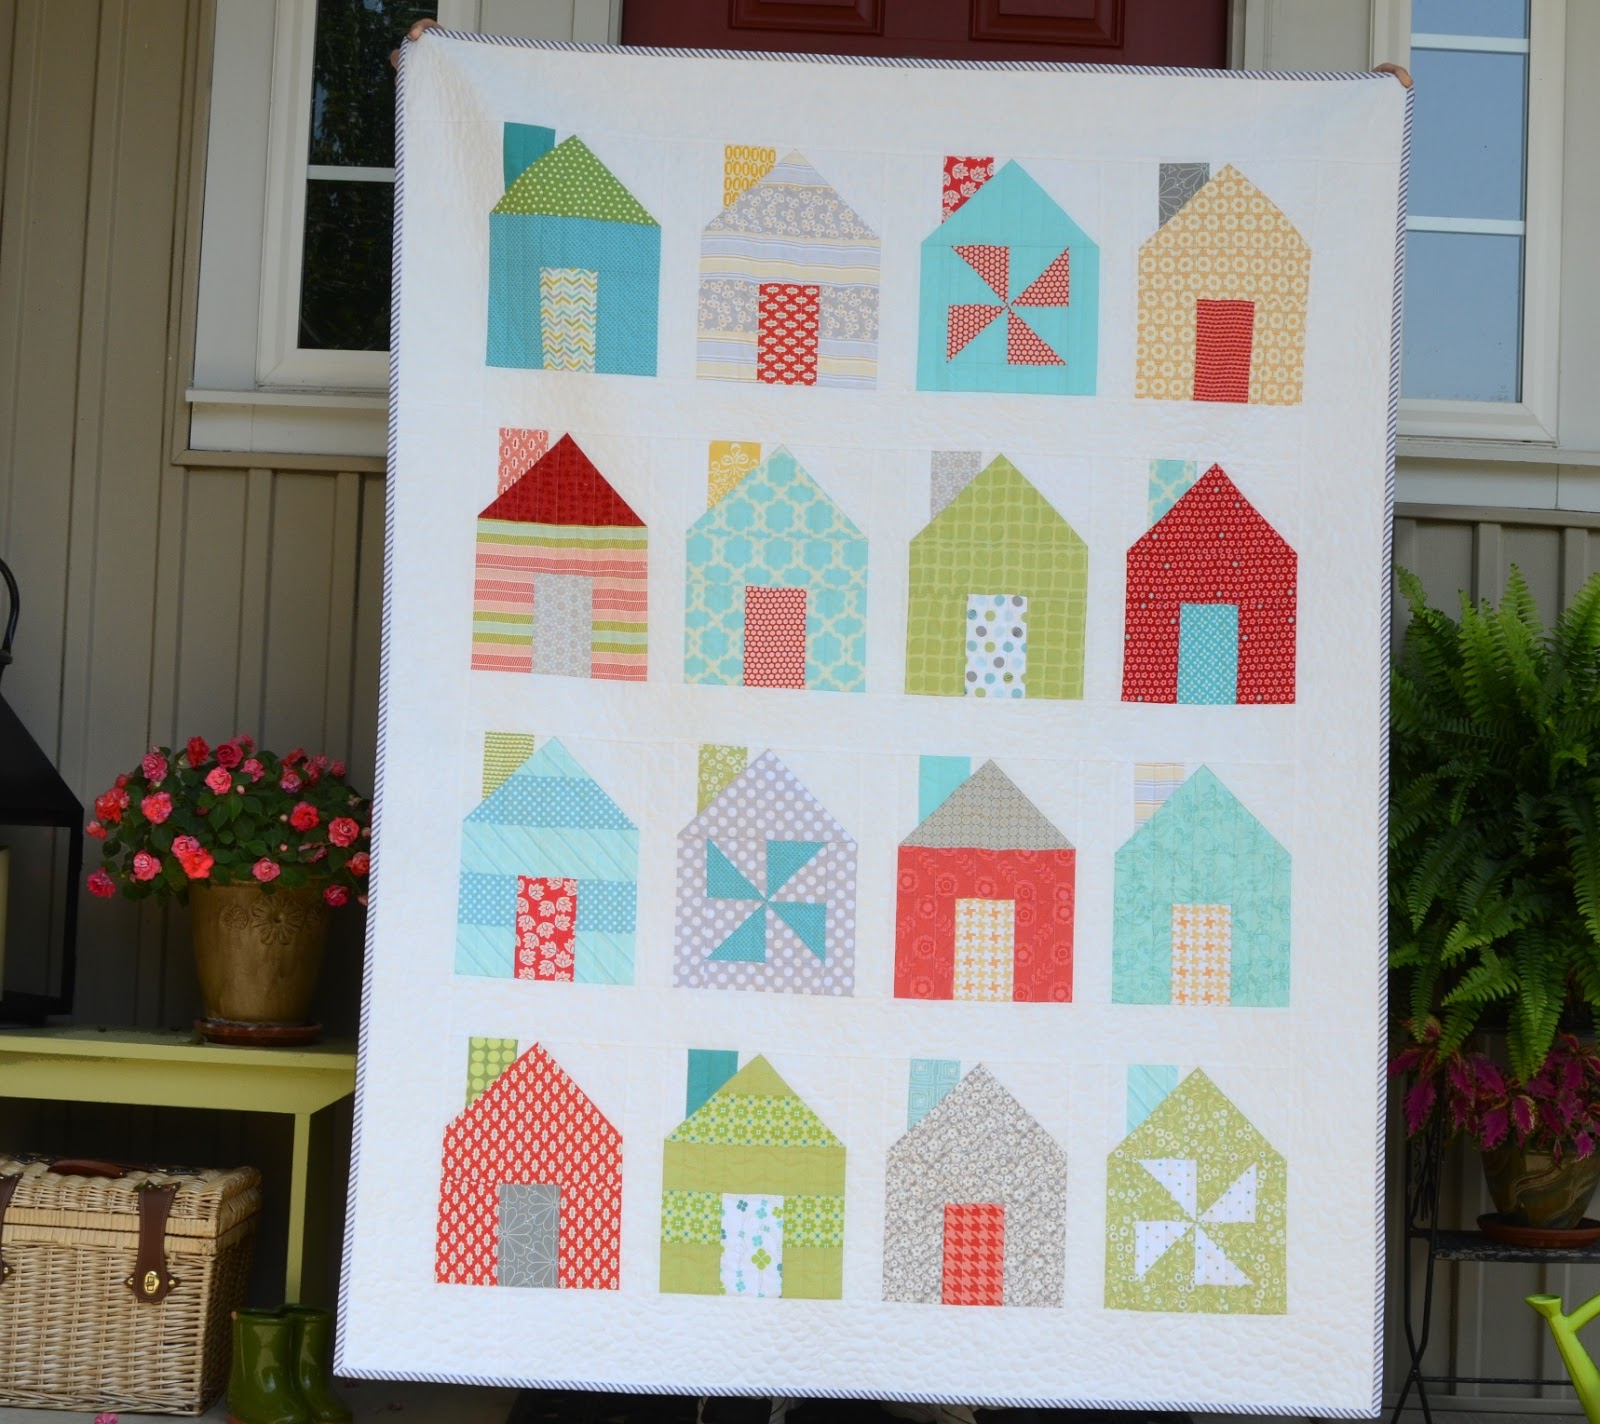 Hyacinth Quilt Designs: Dwell... a quilt from Simply Retro : retro quilts - Adamdwight.com